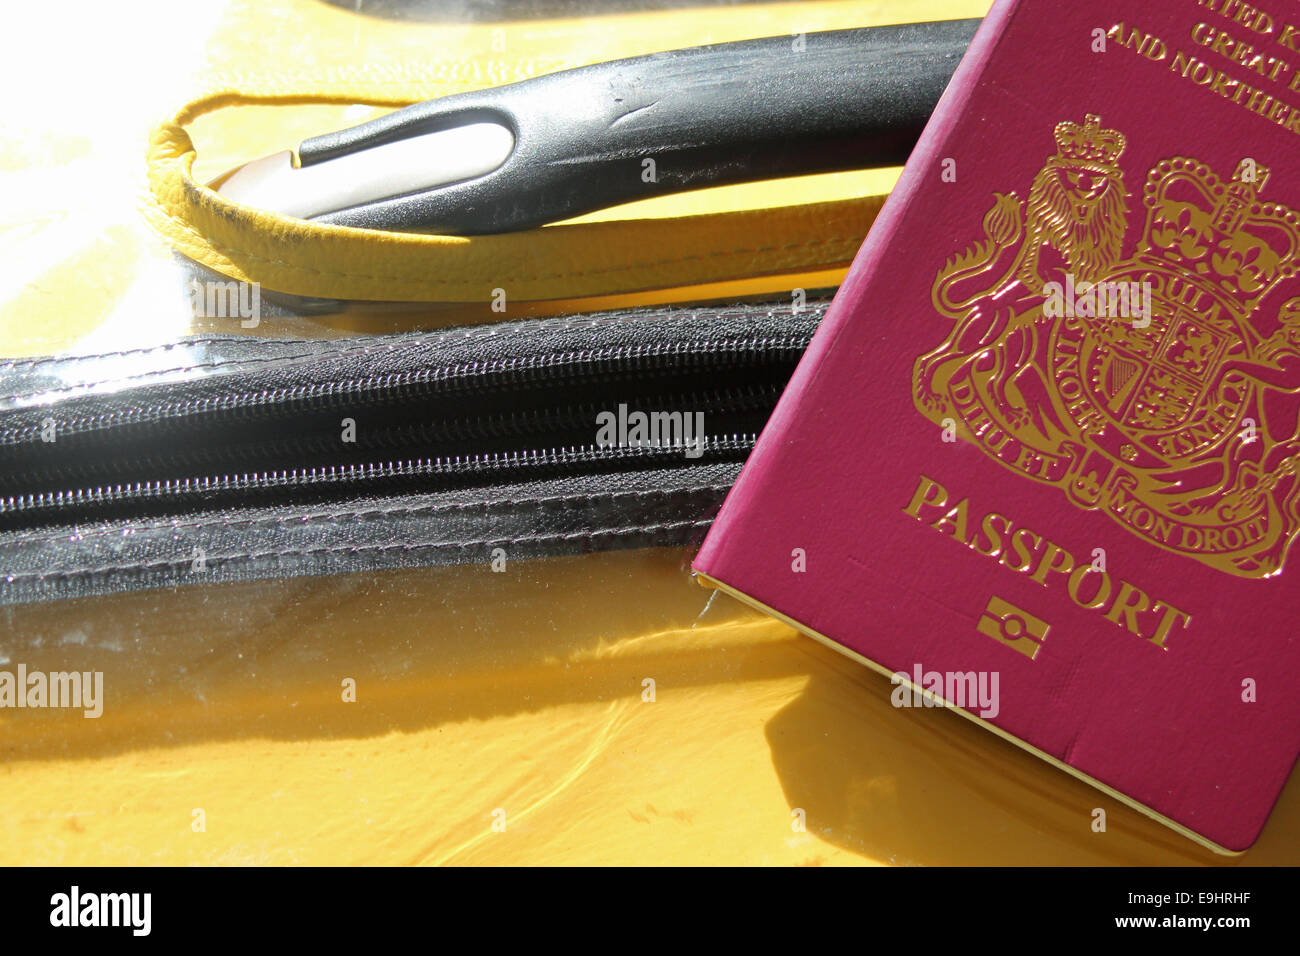 Passport and suitcase symbolizing vacation and travel - Stock Image